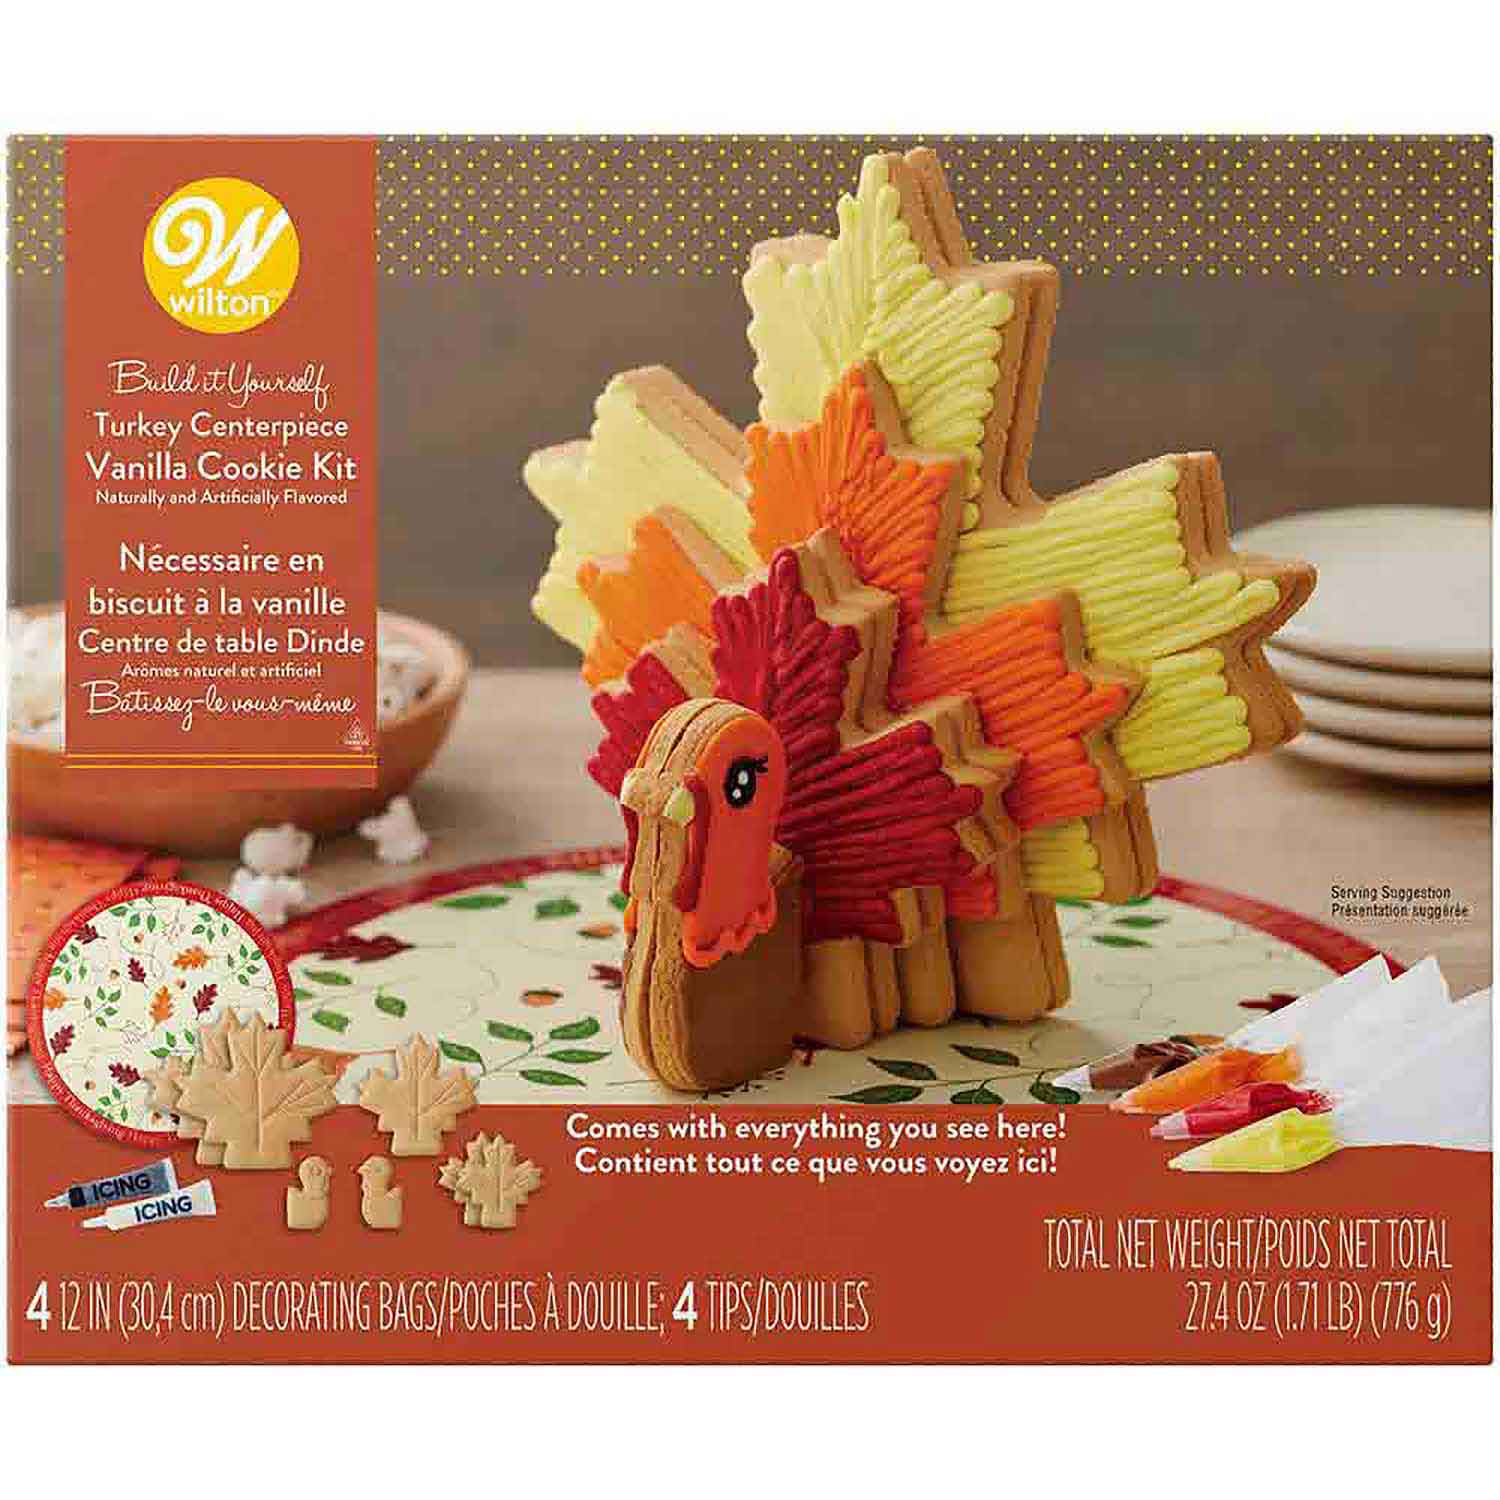 Turkey Centerpiece Vanilla Cookie Kit